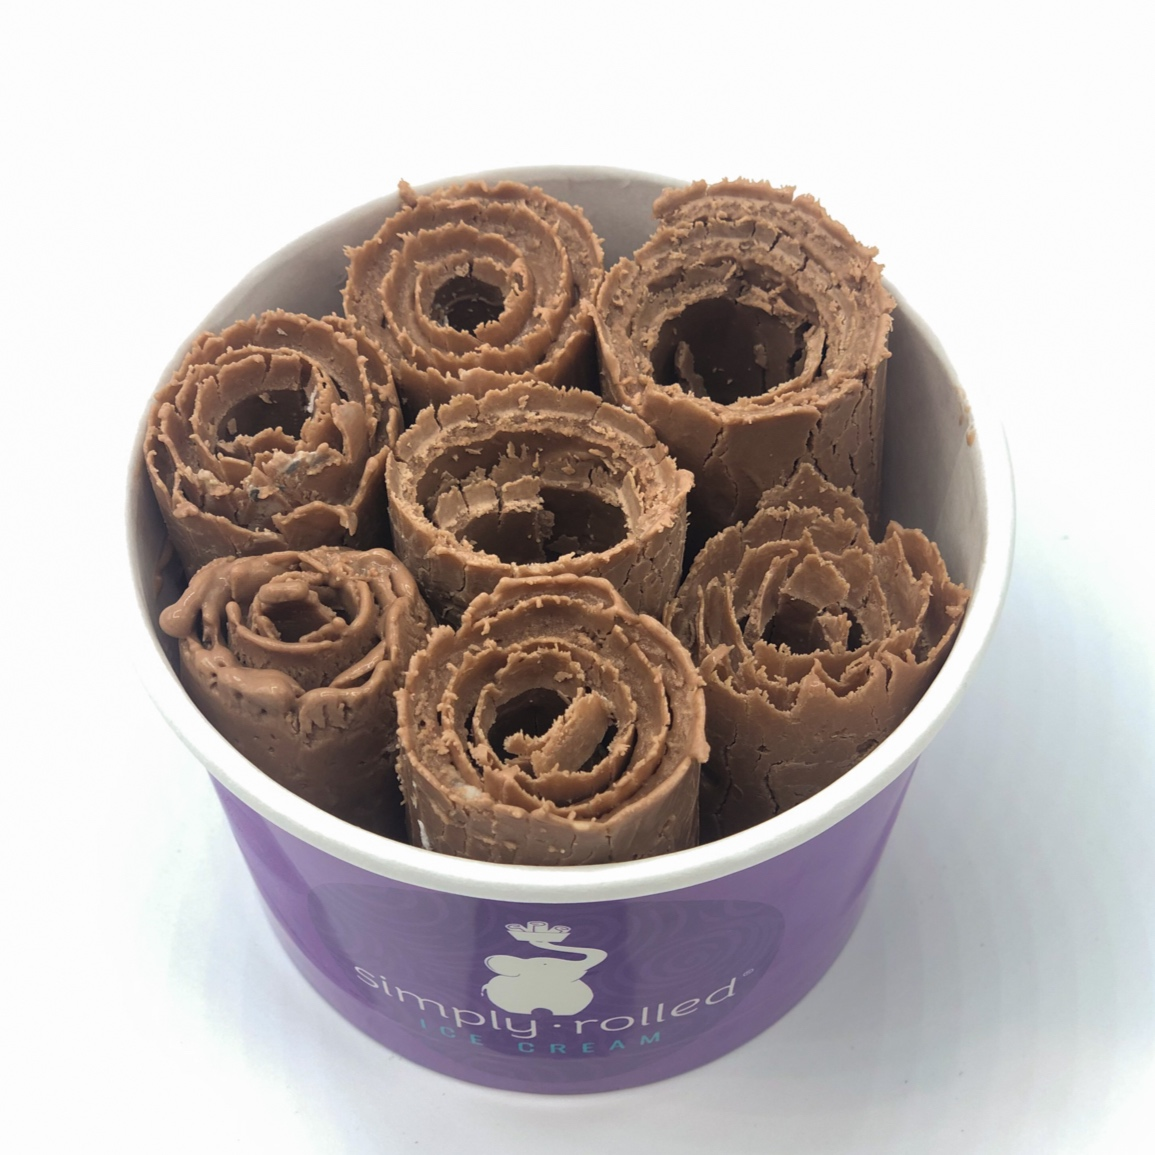 simply rolled ice cream